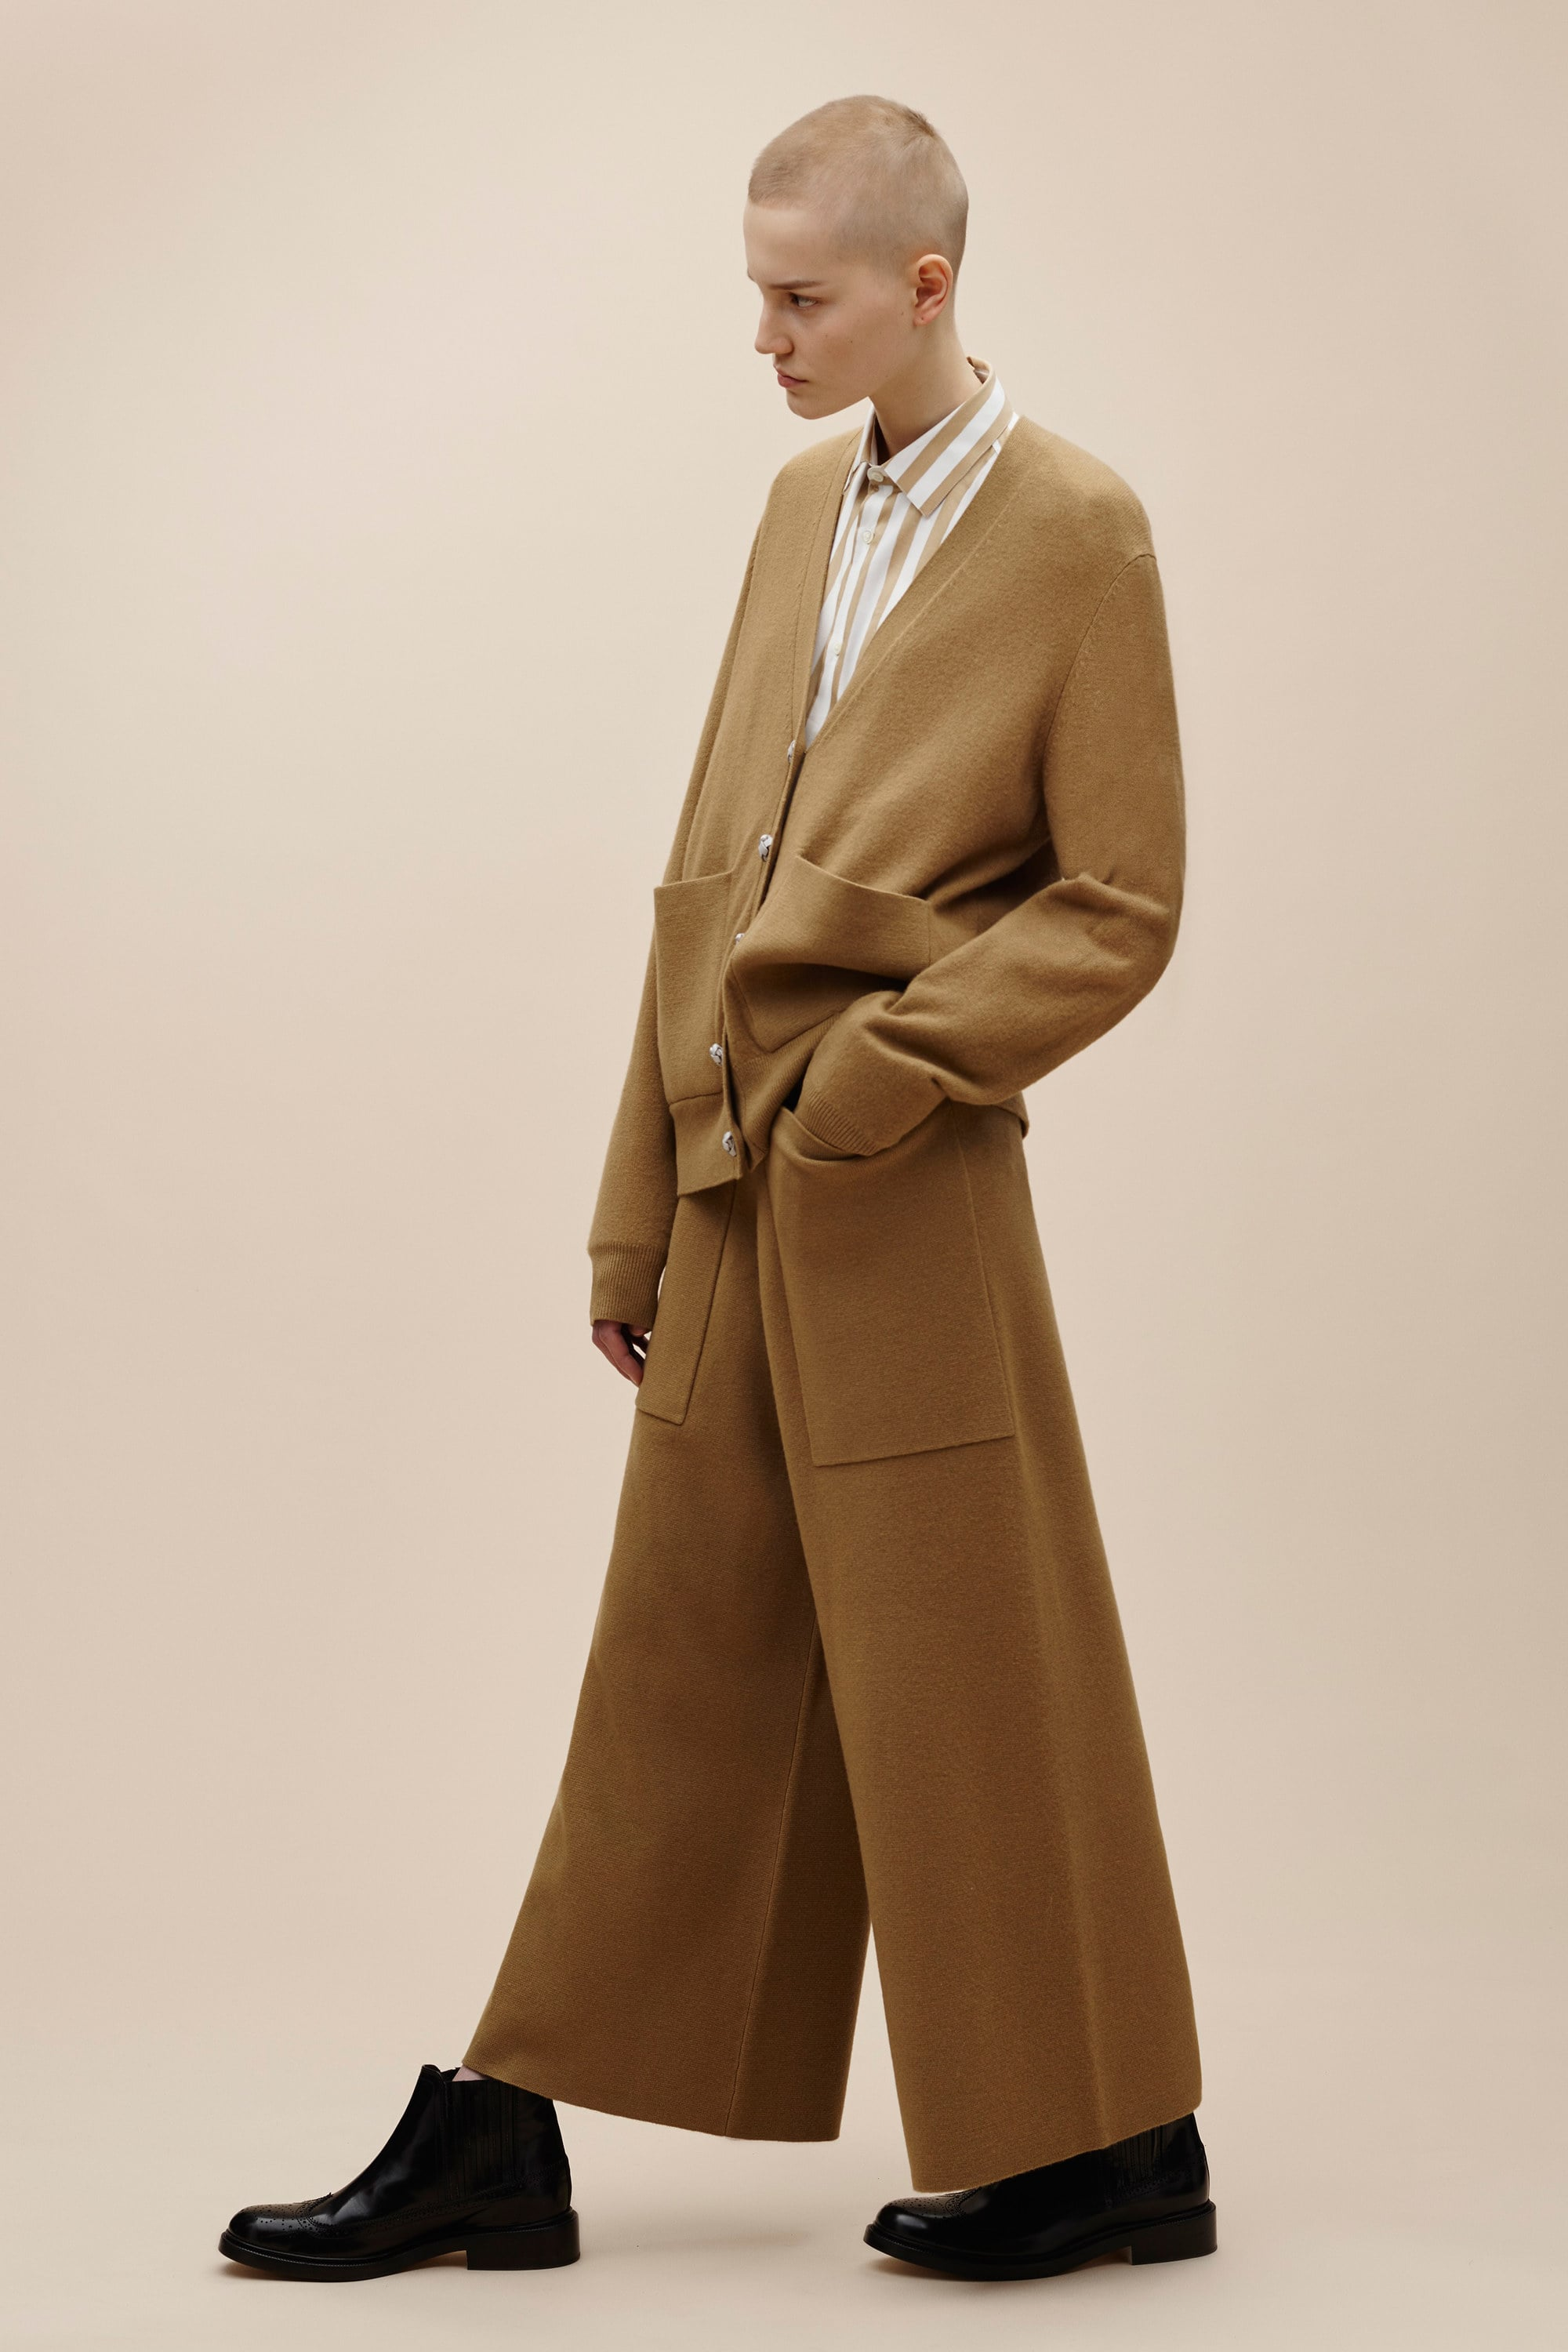 joseph-pre-fall-2016-lookbook-03.jpg